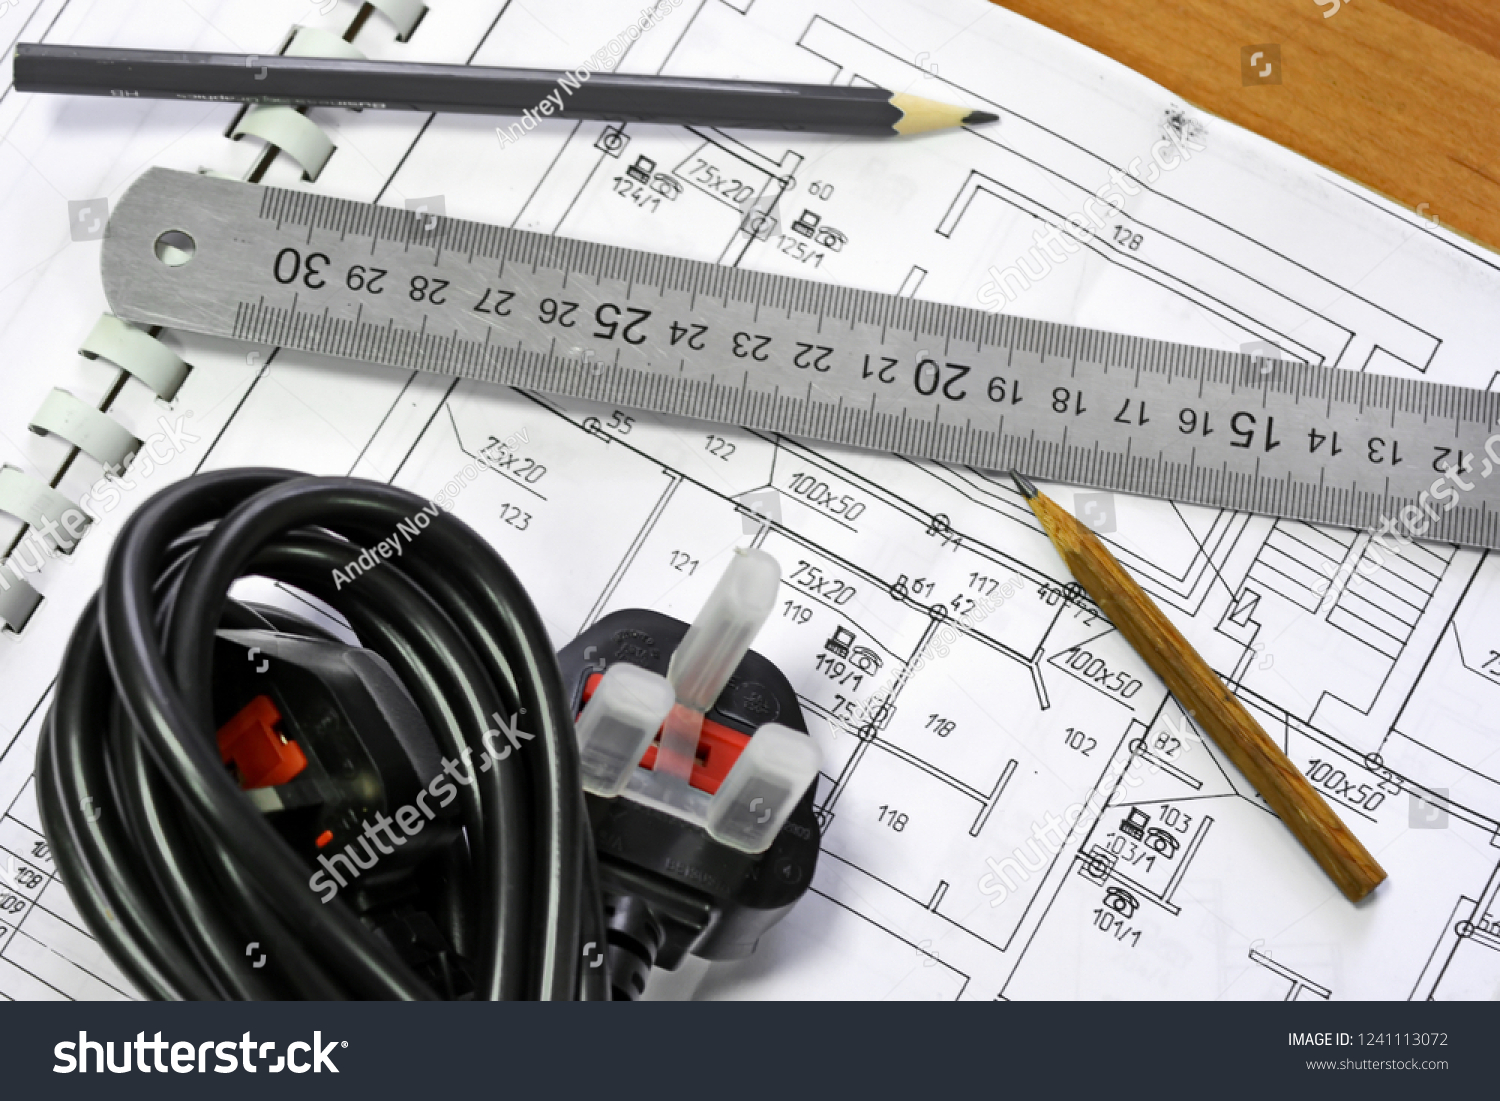 hight resolution of network schematic diagram of the electronic communications building on which lie sharp pencils steel ruler